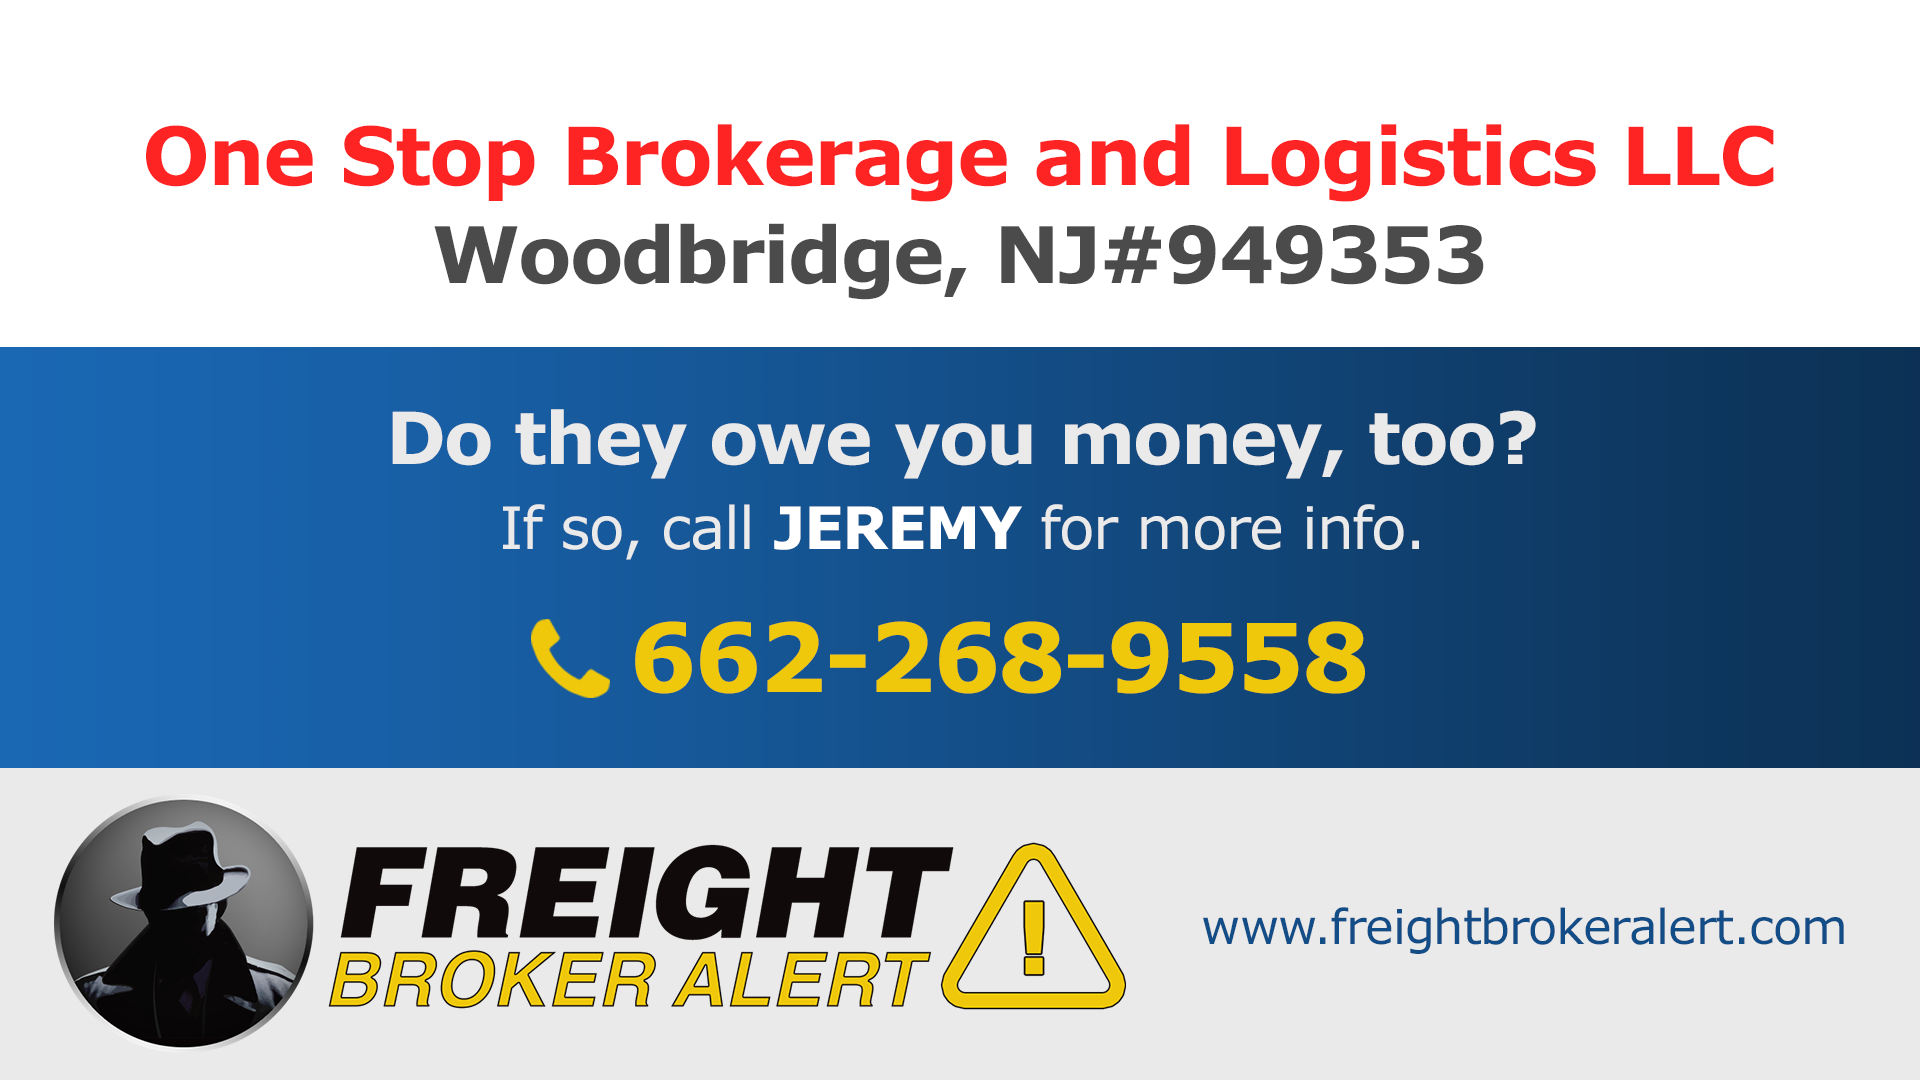 One Stop Brokerage and Logistics LLC New Jersey